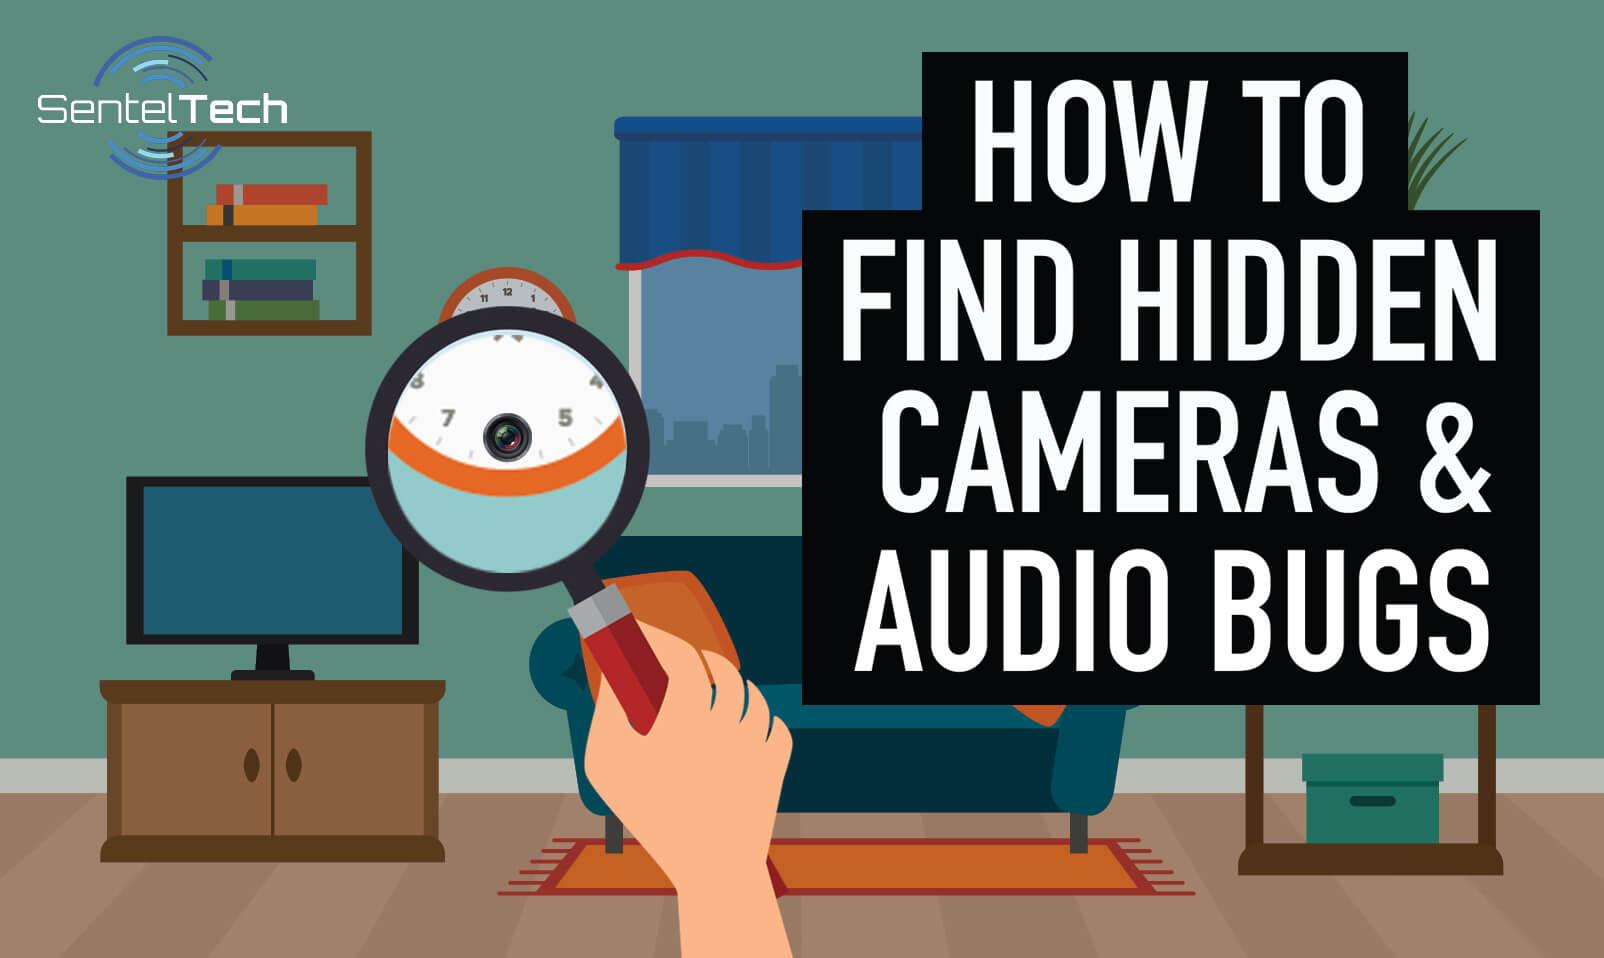 /images/how-to-find-hidden-cameras/Hidden_camera_blog_post_2.jpg